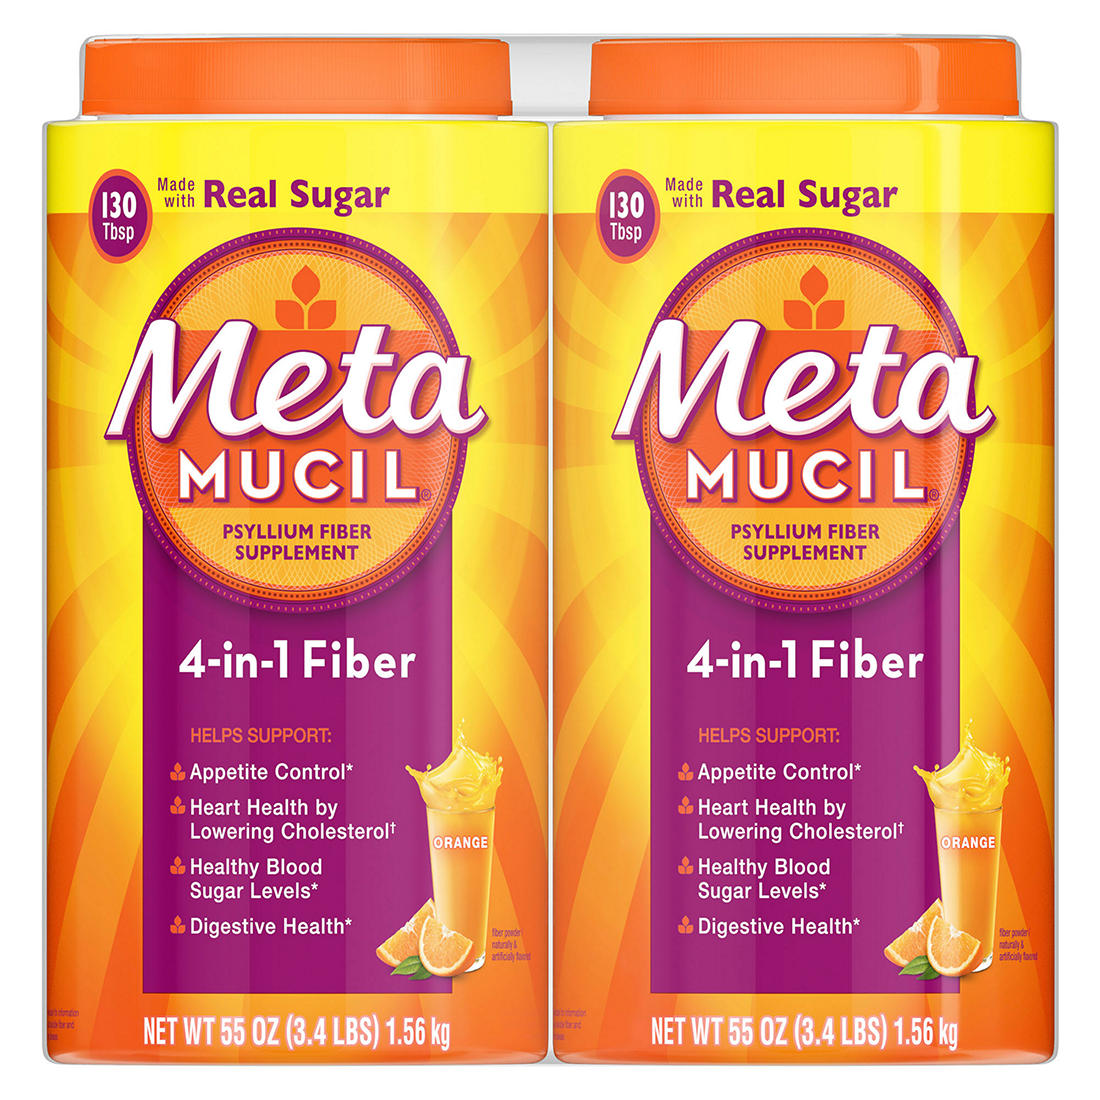 photo regarding Metamucil Coupons Printable identified as Metamucil Fiber, 4-within just-1 Psyllium Fiber with True Sugar, Orange Gentle Flavored Consume, 260 Servings